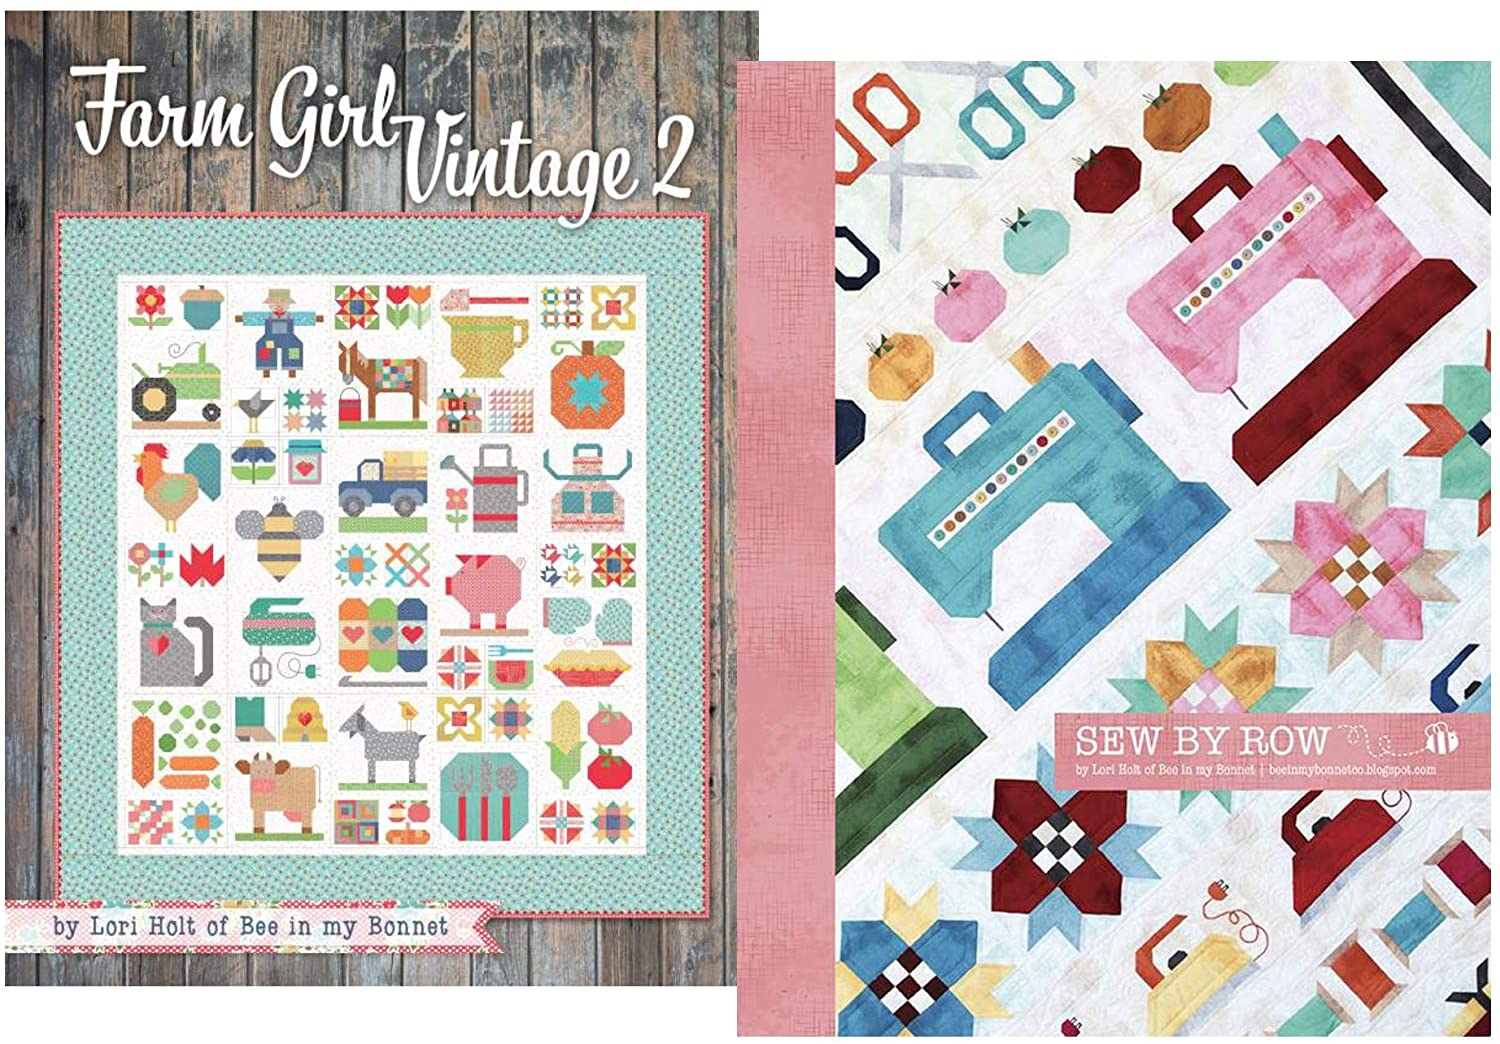 Best Sellers Quilt Pattern Bundle: Farm Girl Vintage 2 Book and Sew by Row by Lori Holt